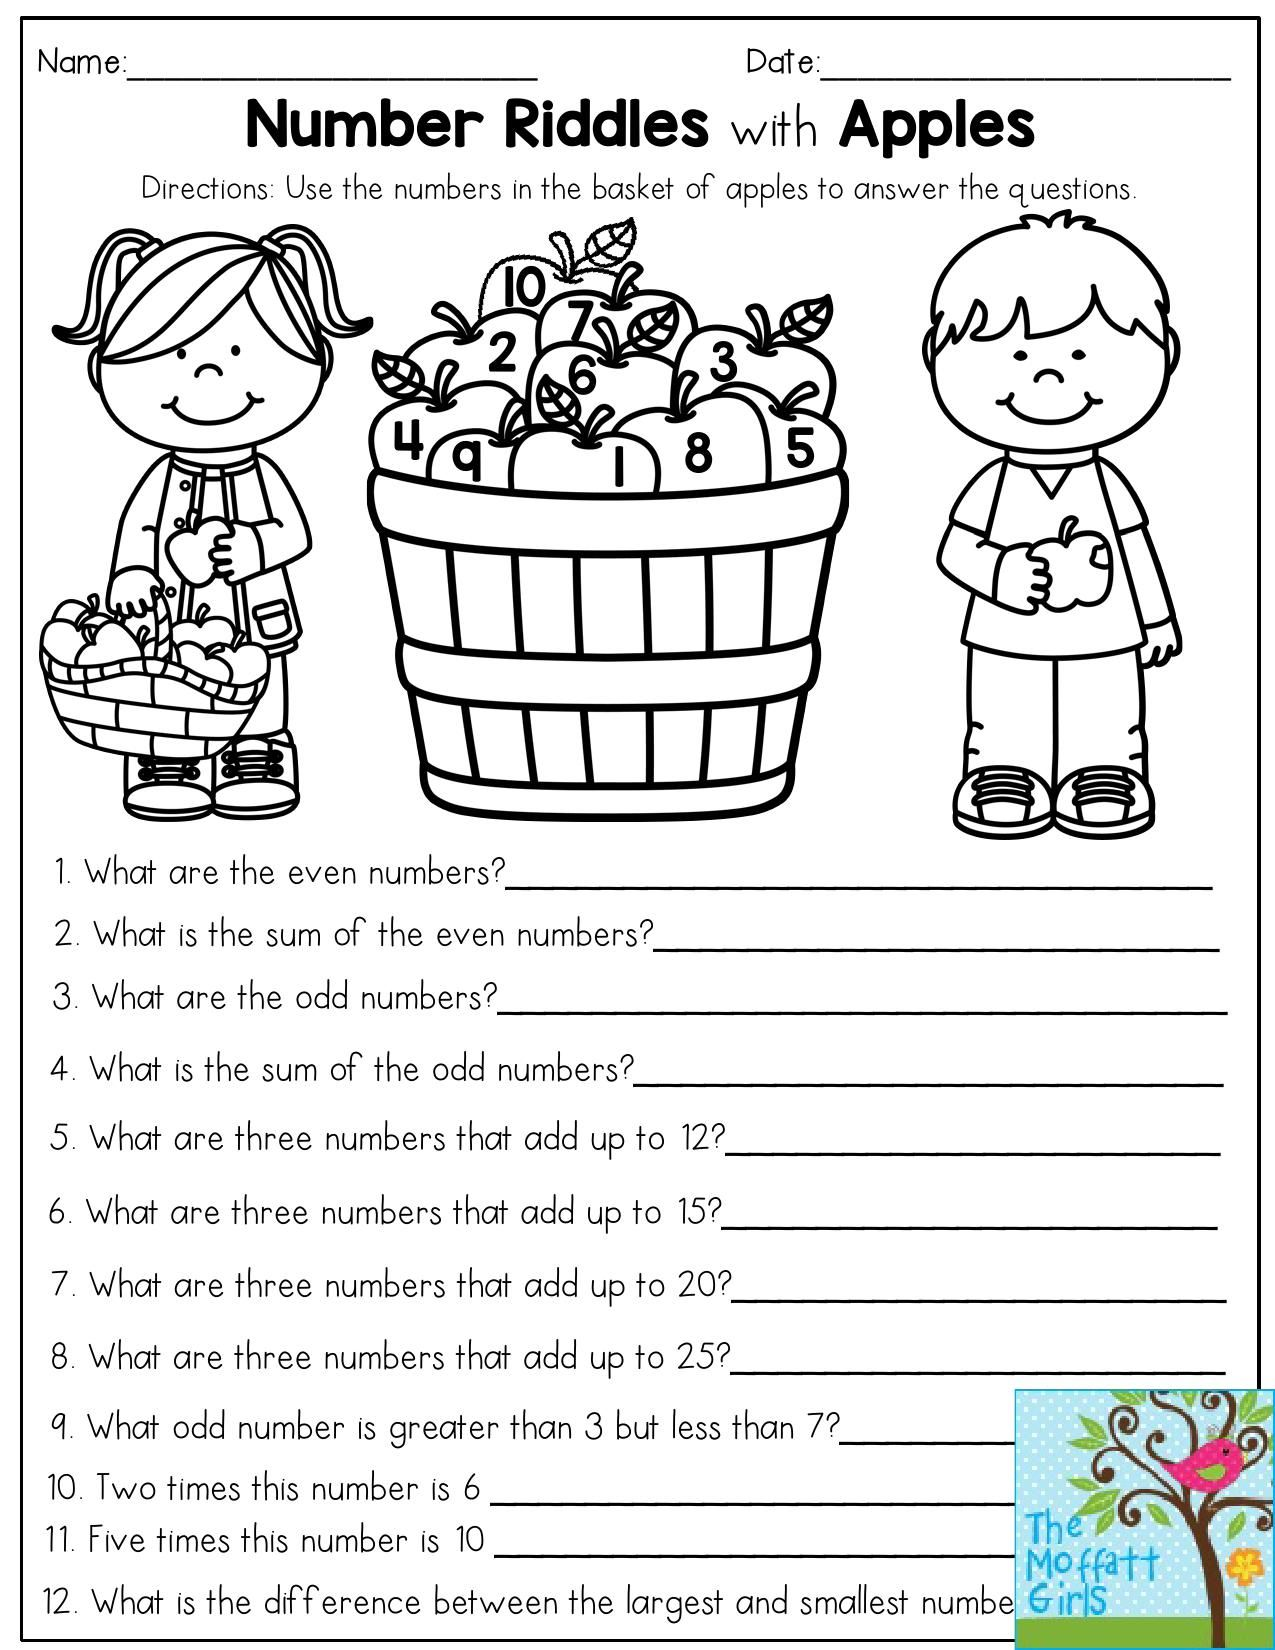 Number Riddles with Apples- Use the numbers in the basket